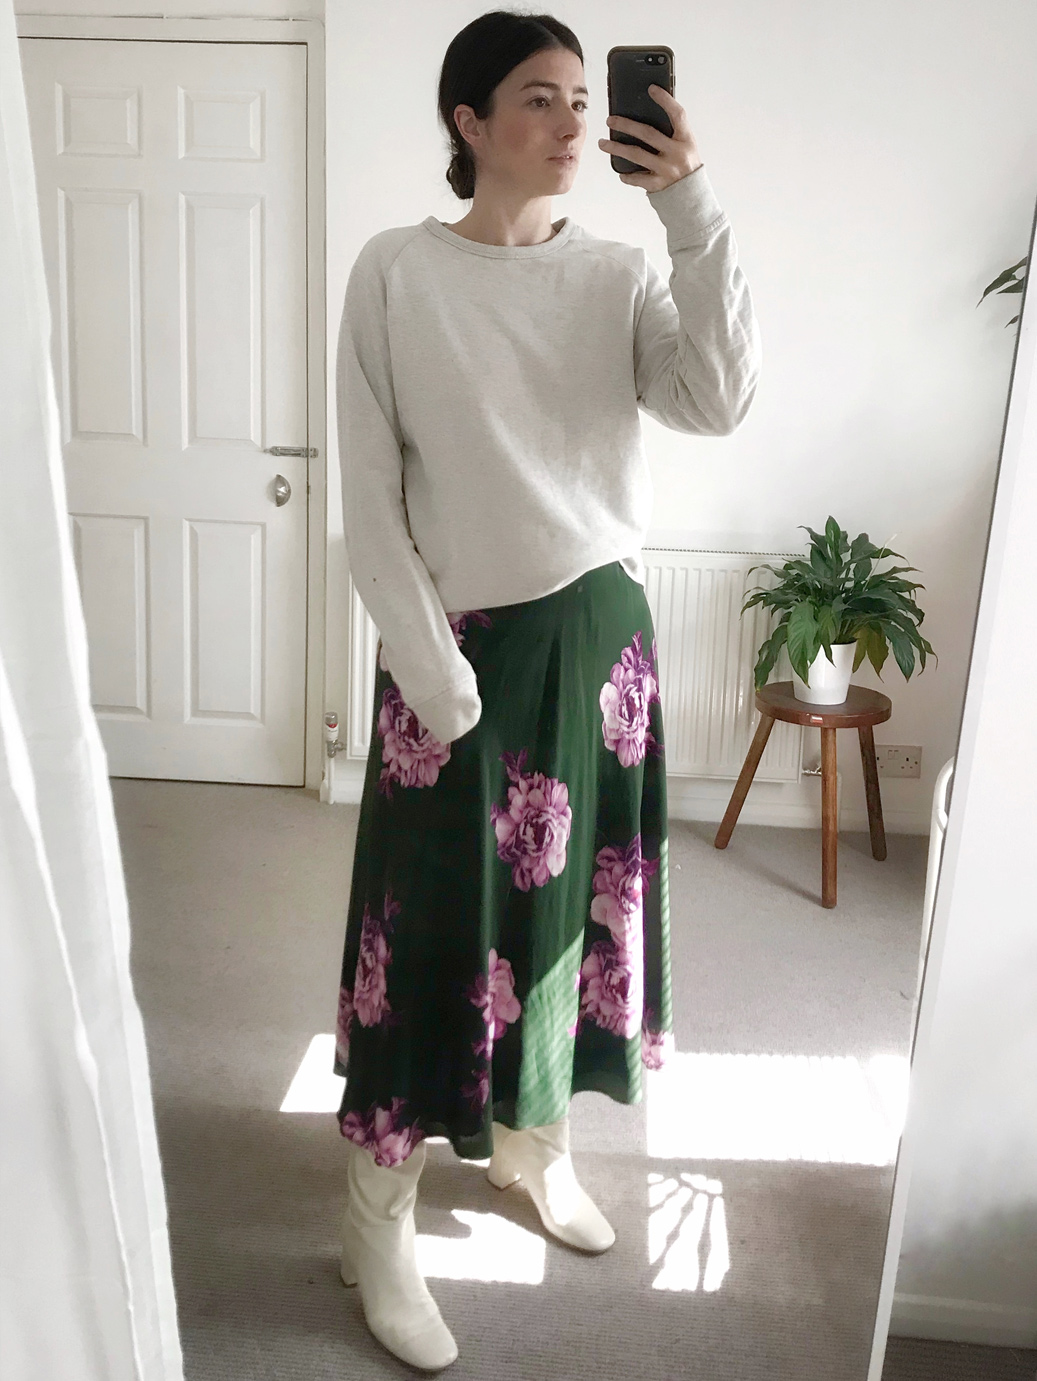 Maddy pictured wearing a floral dress and comfy white knit.